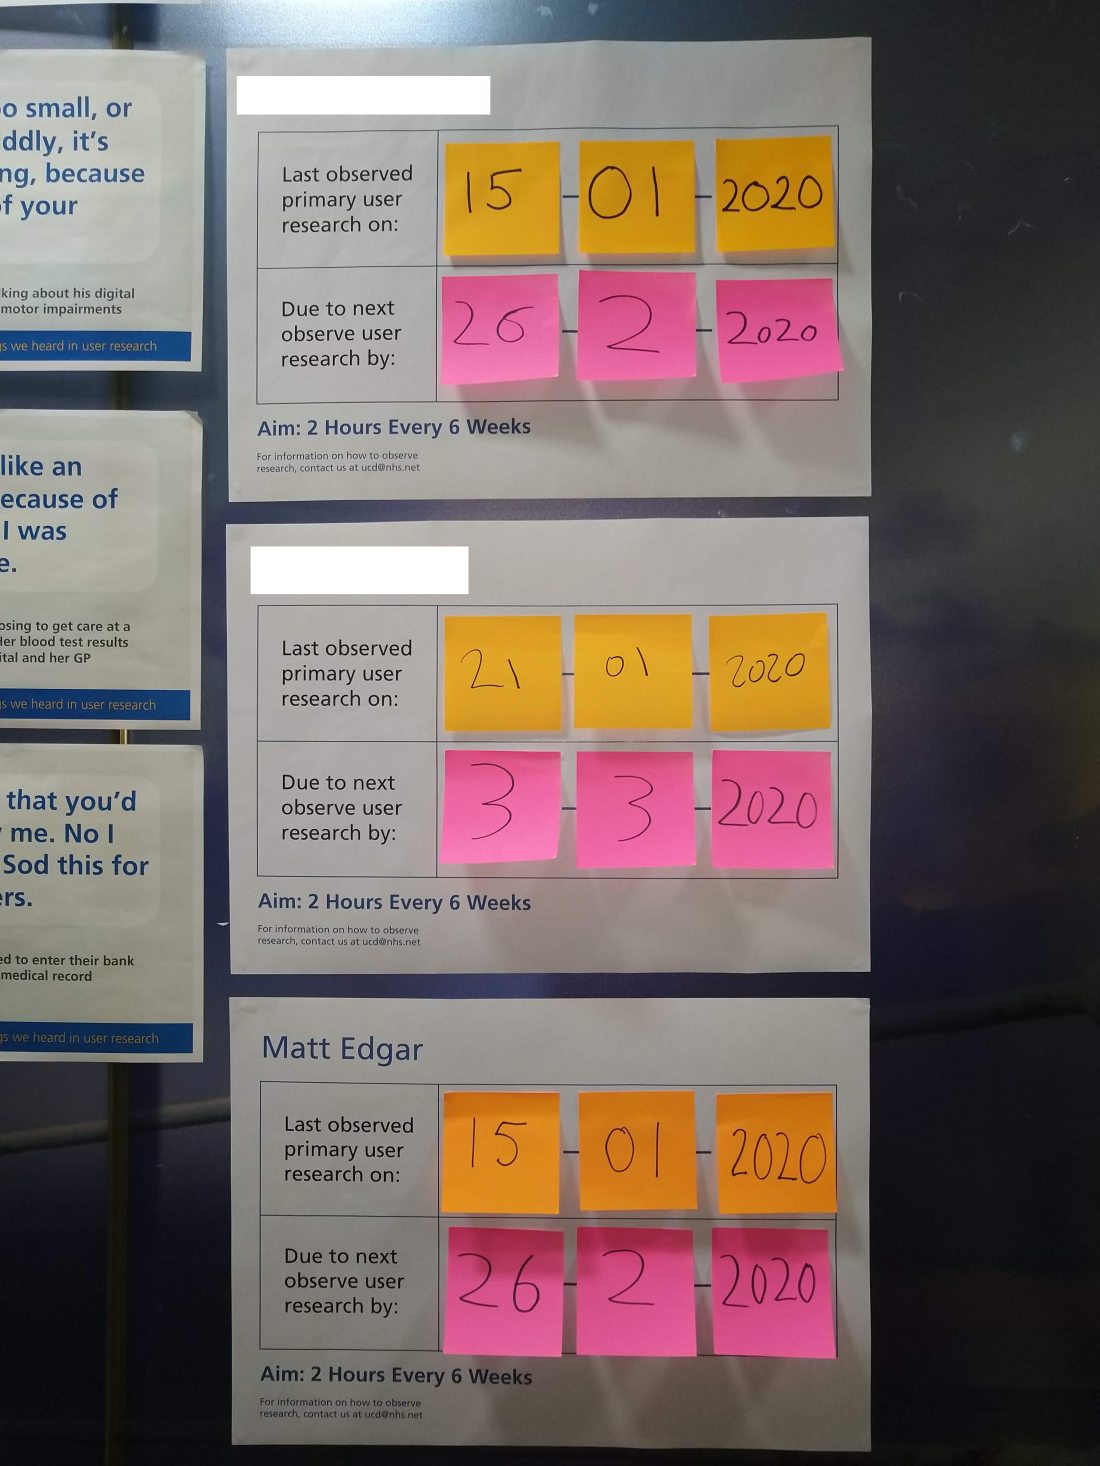 3 A4 sheets with stick notes showing when 3 people last observed user research and when they're next due to observe to keep up their 2 Hours Every 6 Weeks